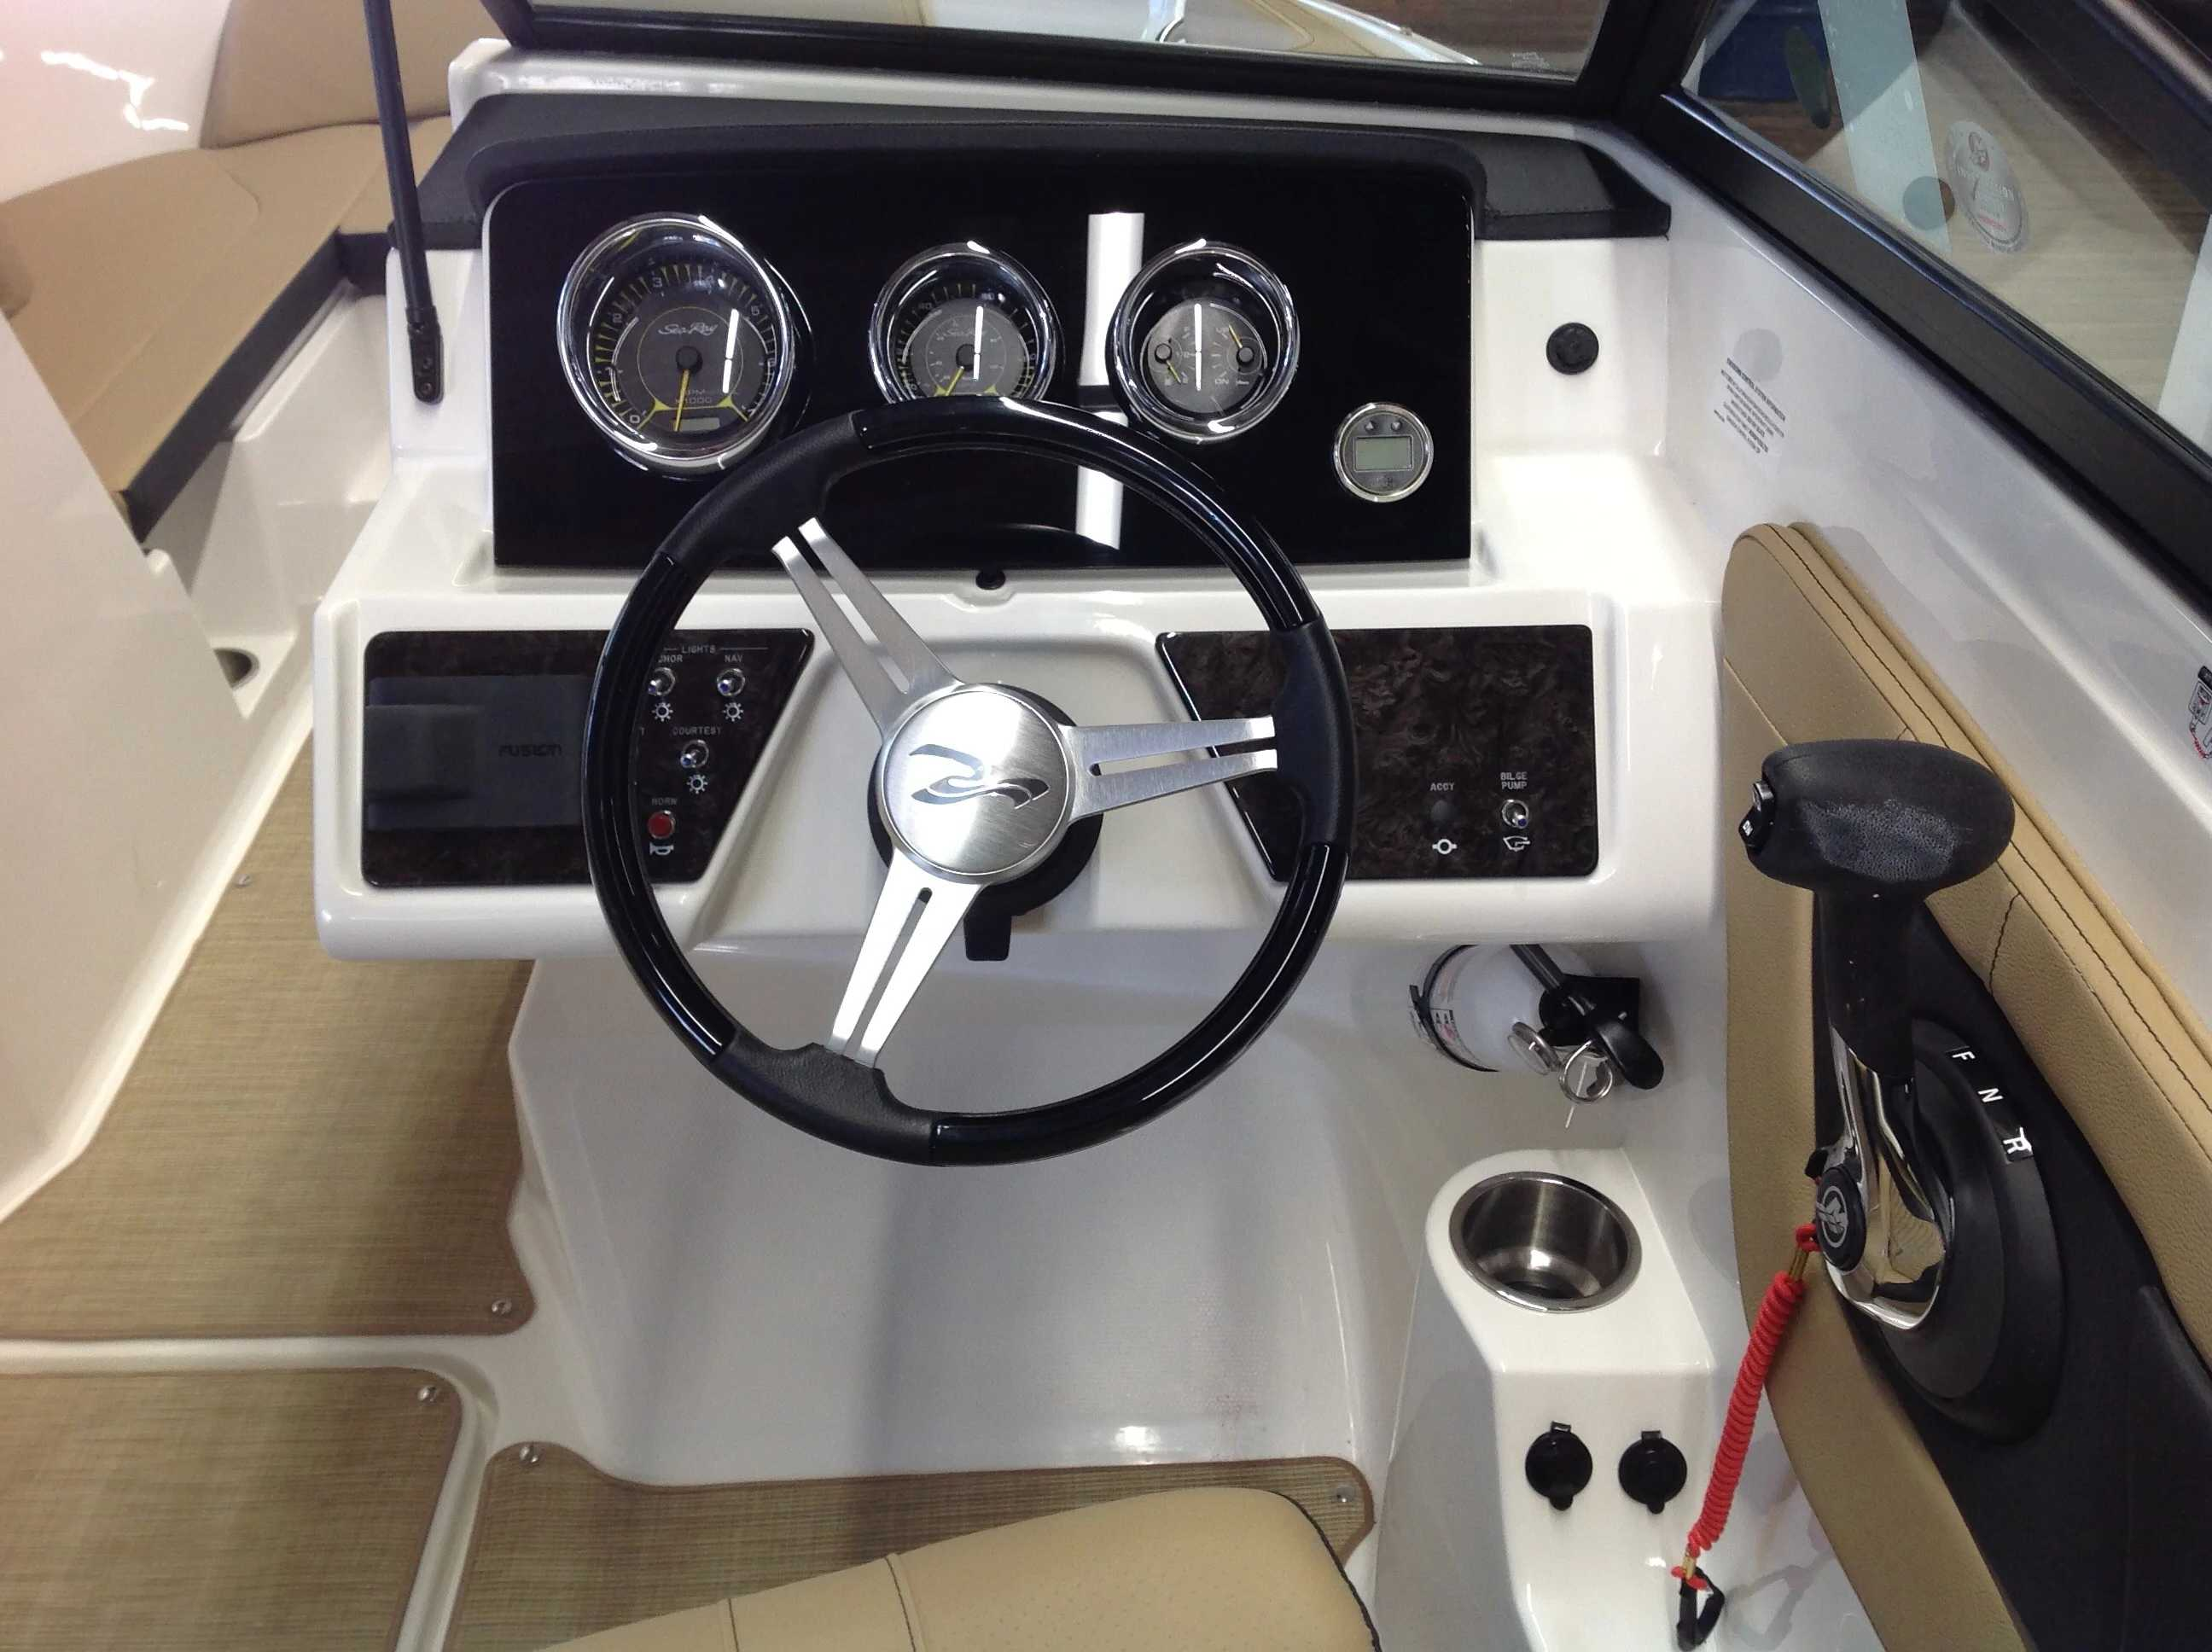 2021 Sea Ray boat for sale, model of the boat is 190 spxo & Image # 9 of 14